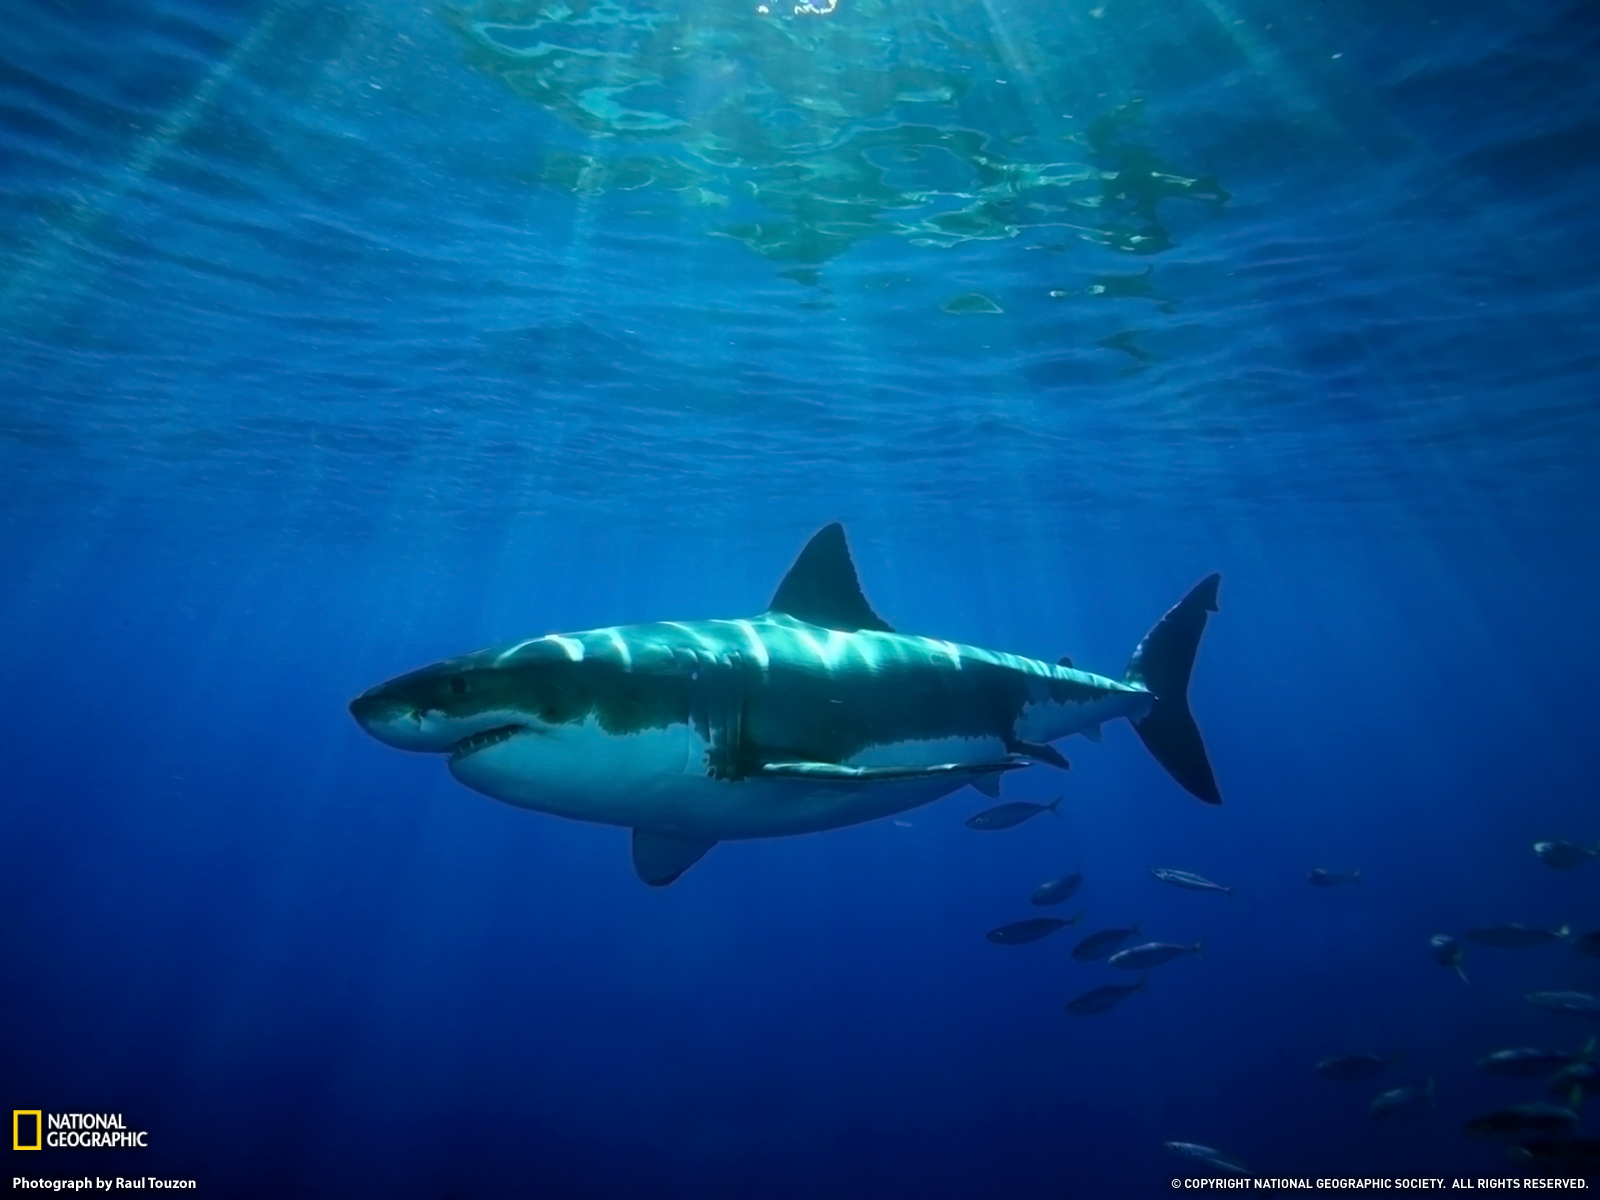 Free Great White Shark Wallpaper - WallpaperSafari Shark In The Water Wallpaper